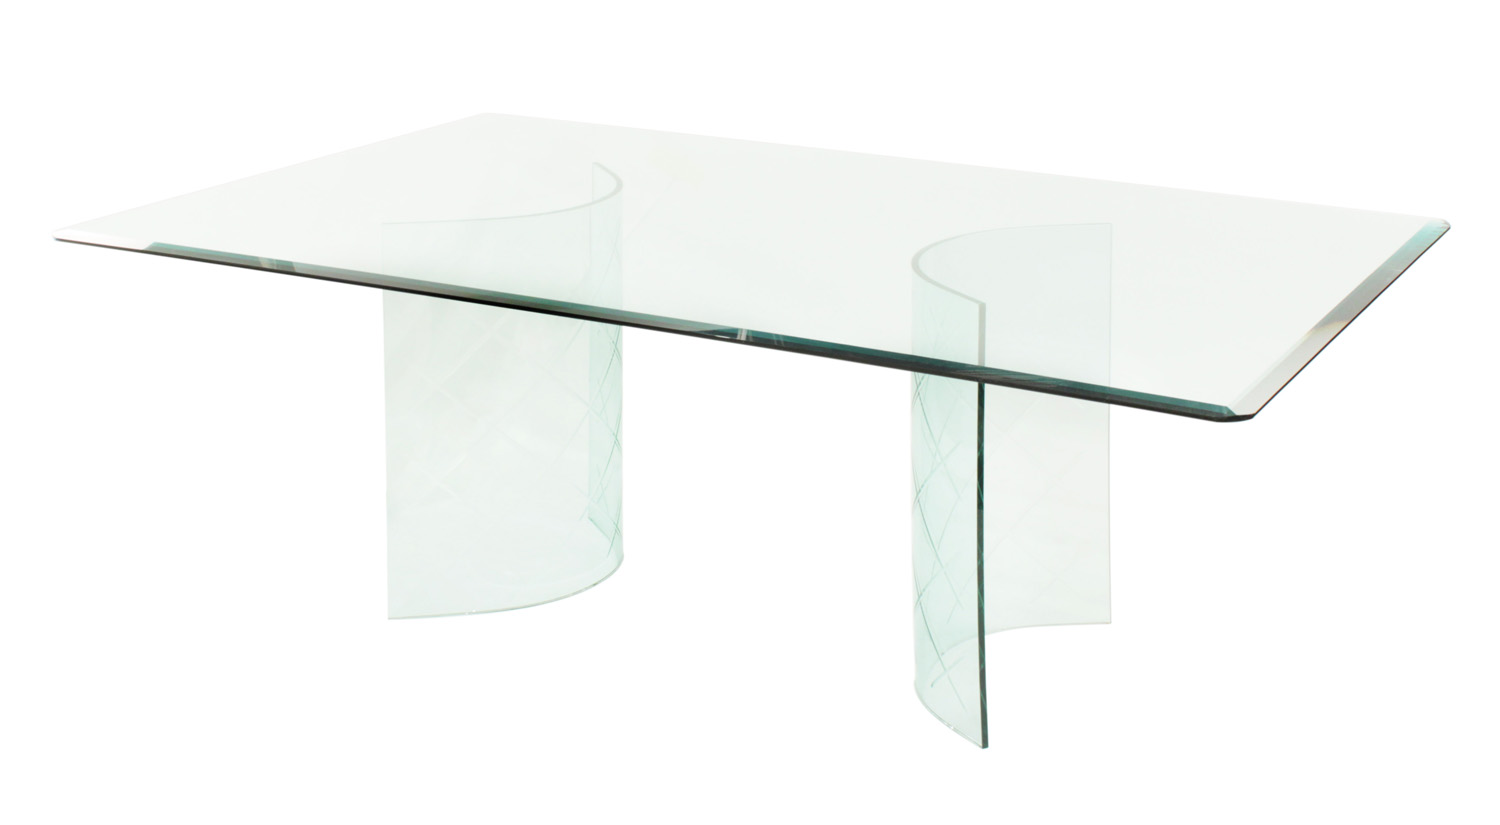 50's 75 curved glass bases crissc diningtable131 hires.jpg